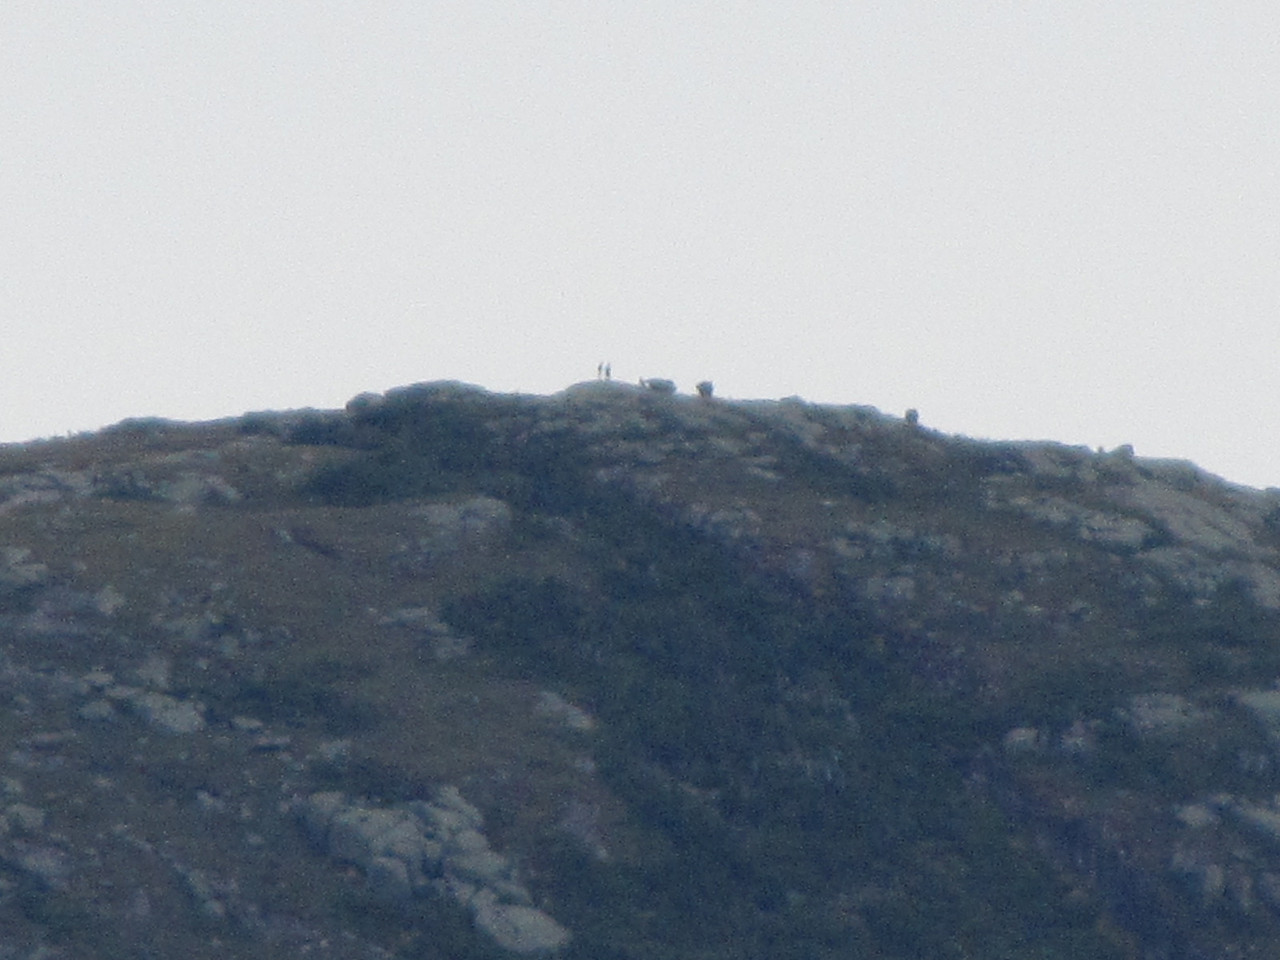 Zooming in to 20X, you see the actual people and what looks to be a flying saucer.